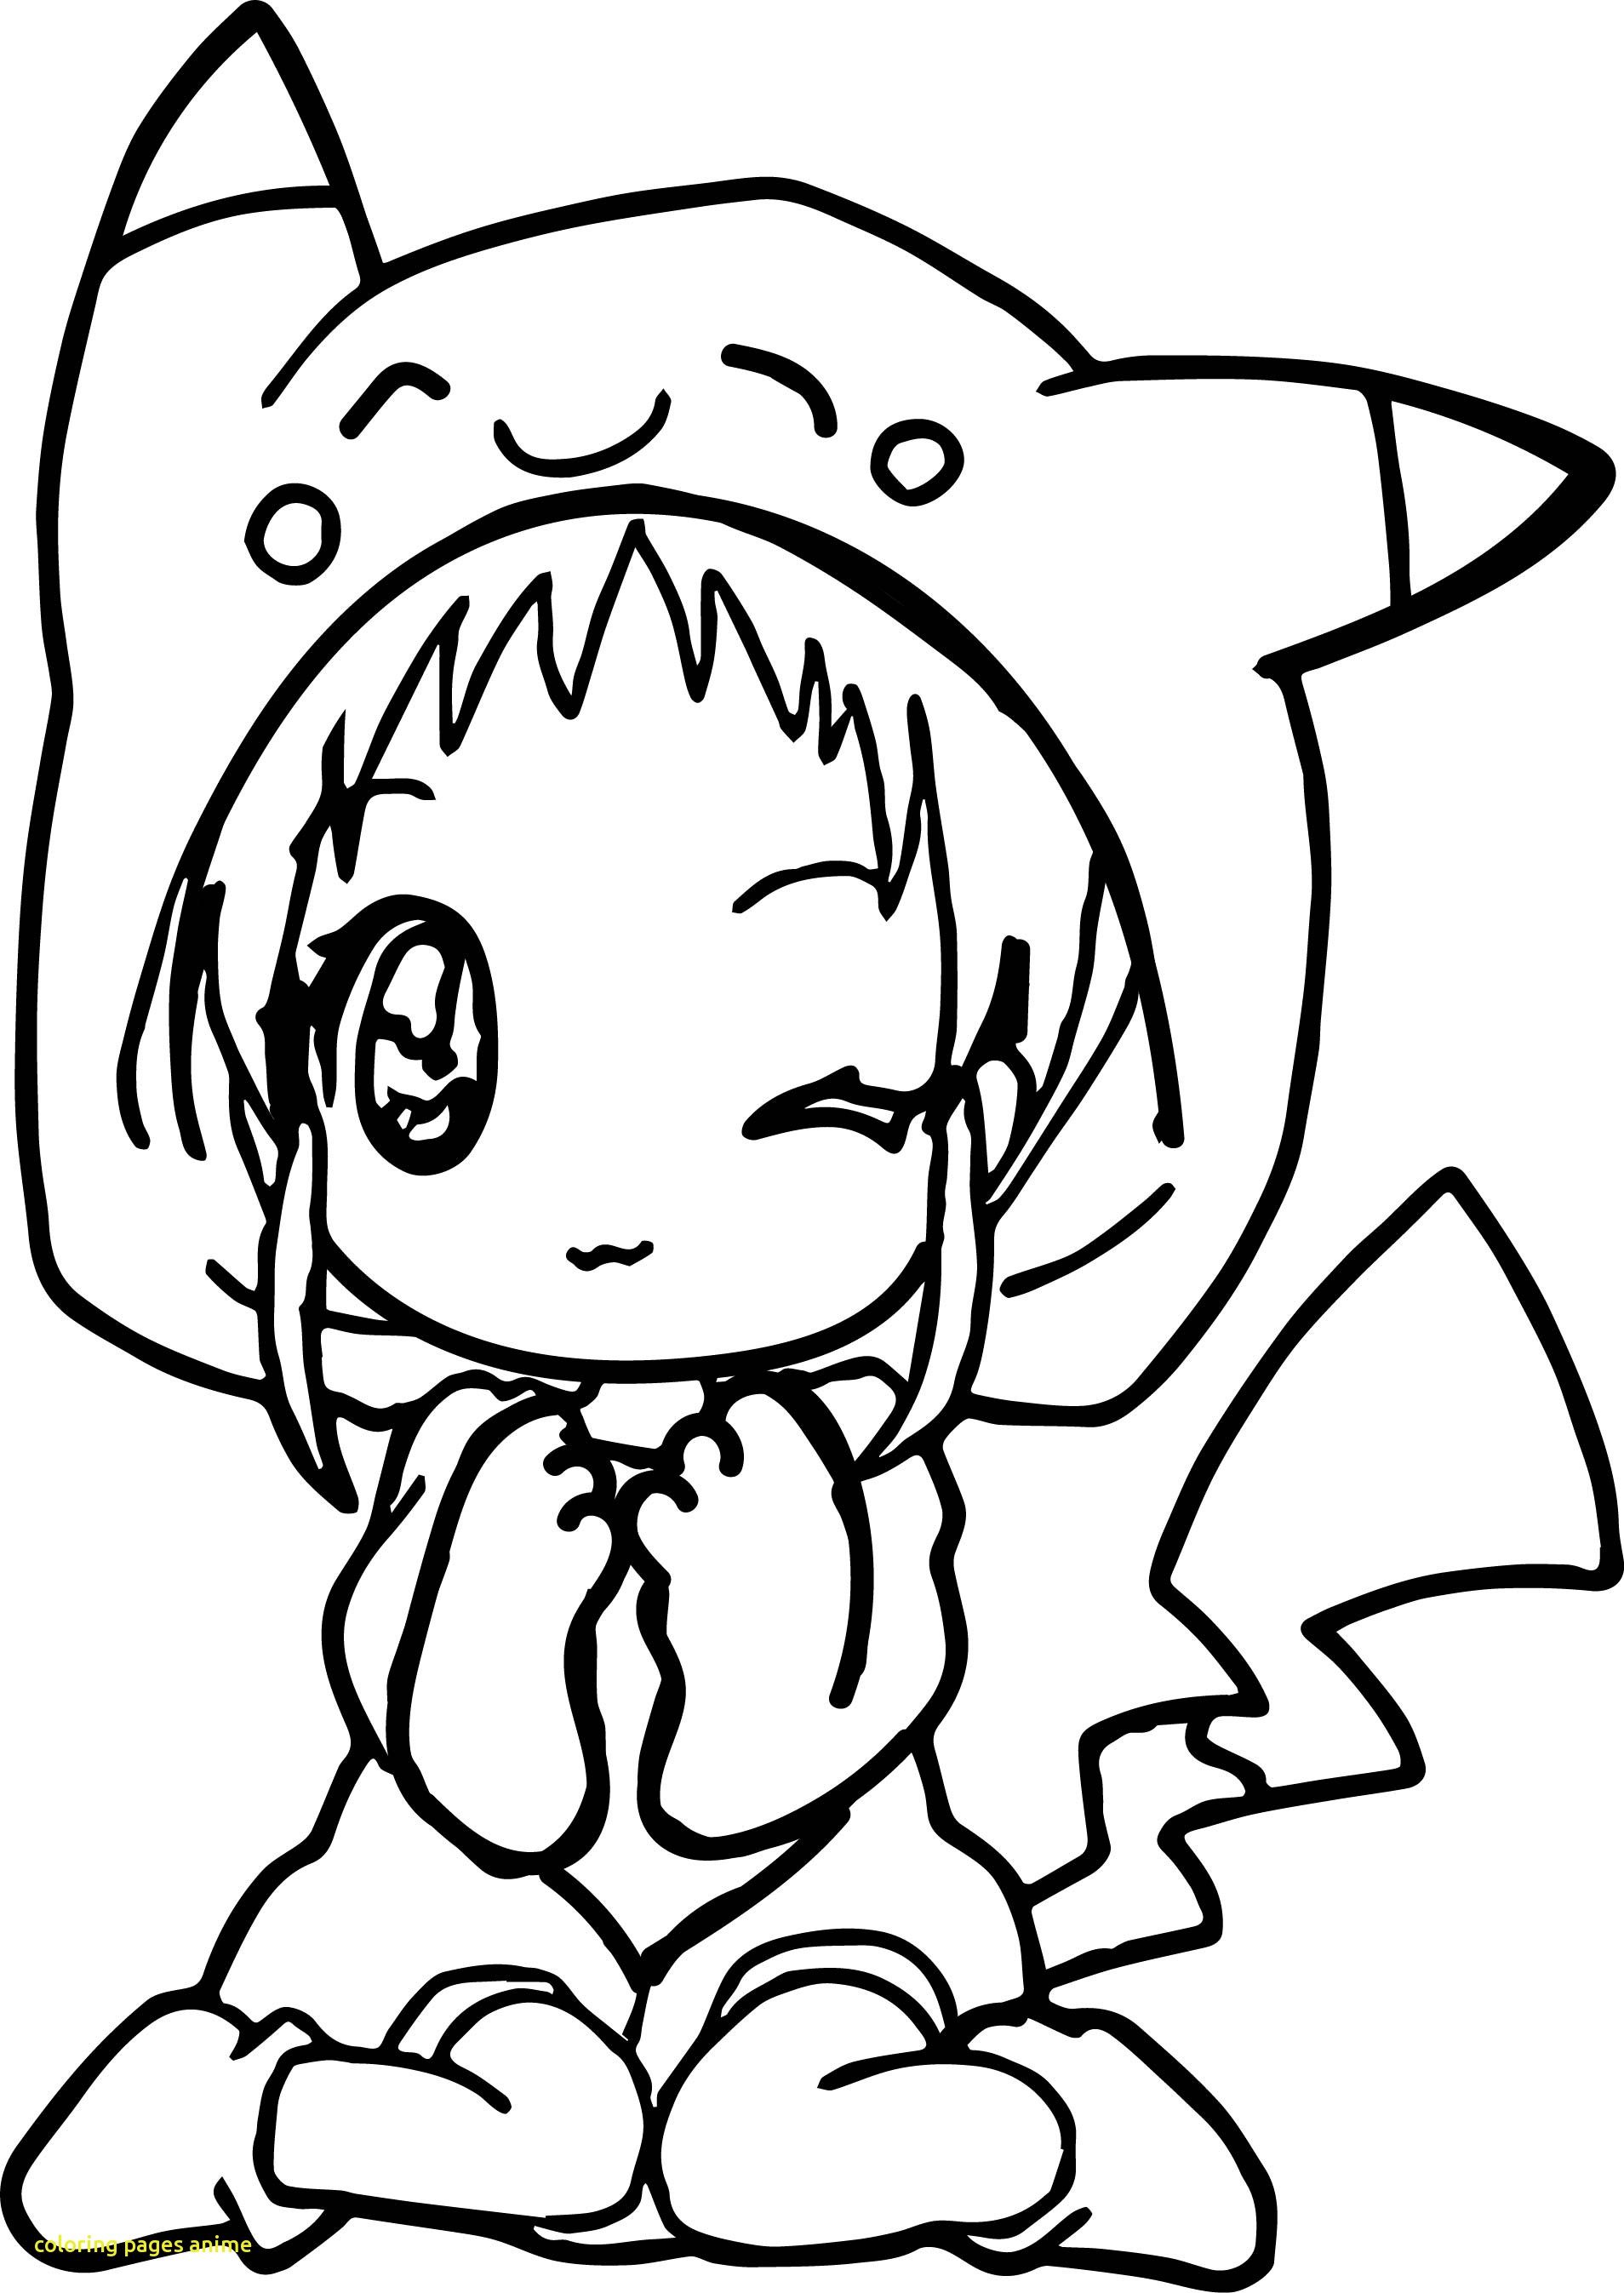 1908x2694 Inspiration Coloring Pages Anime With Anime Girl Pikachu Dress